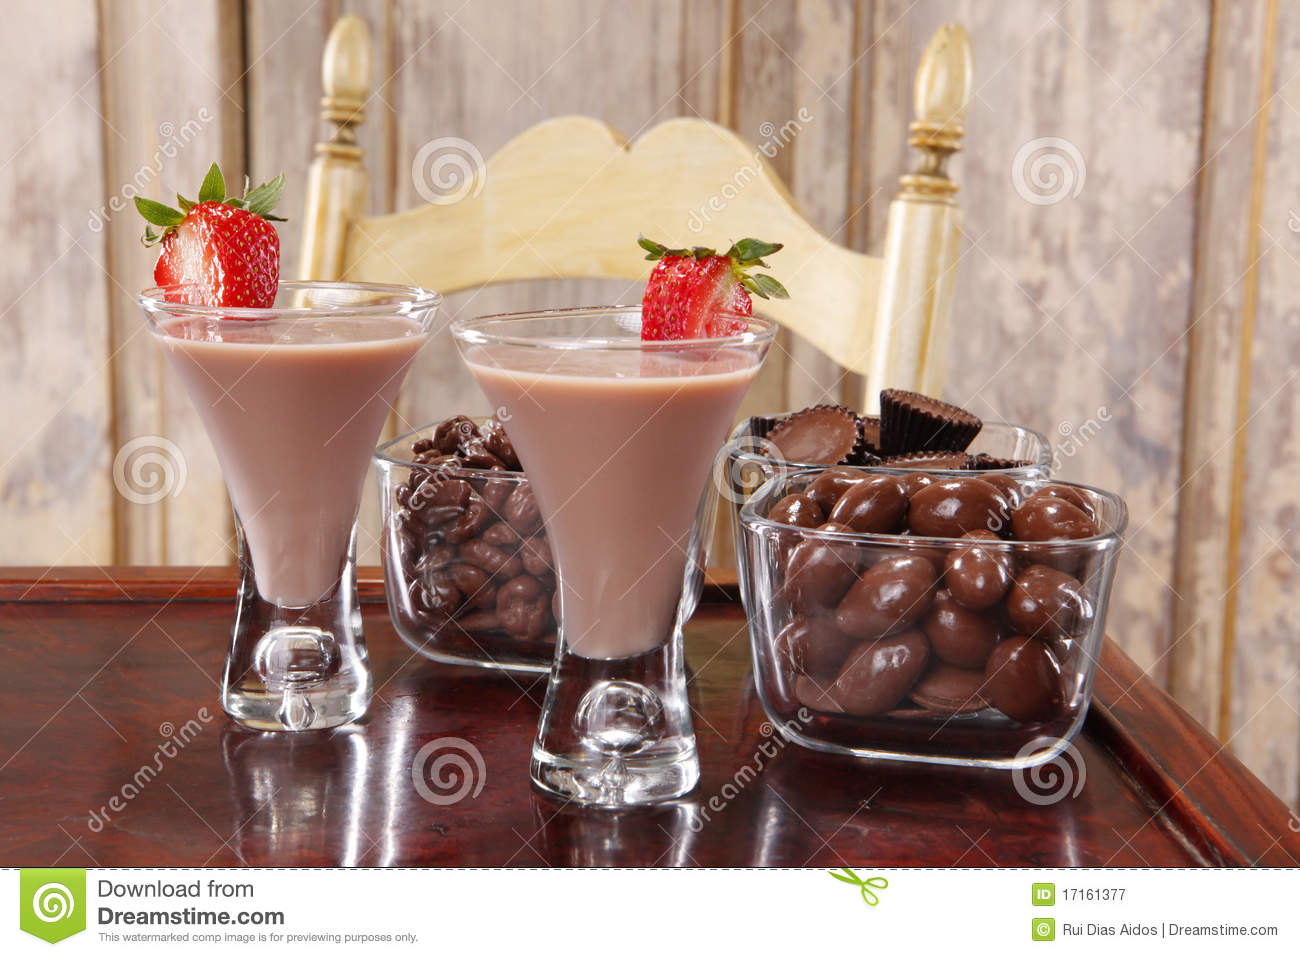 Chocolate cream liquor